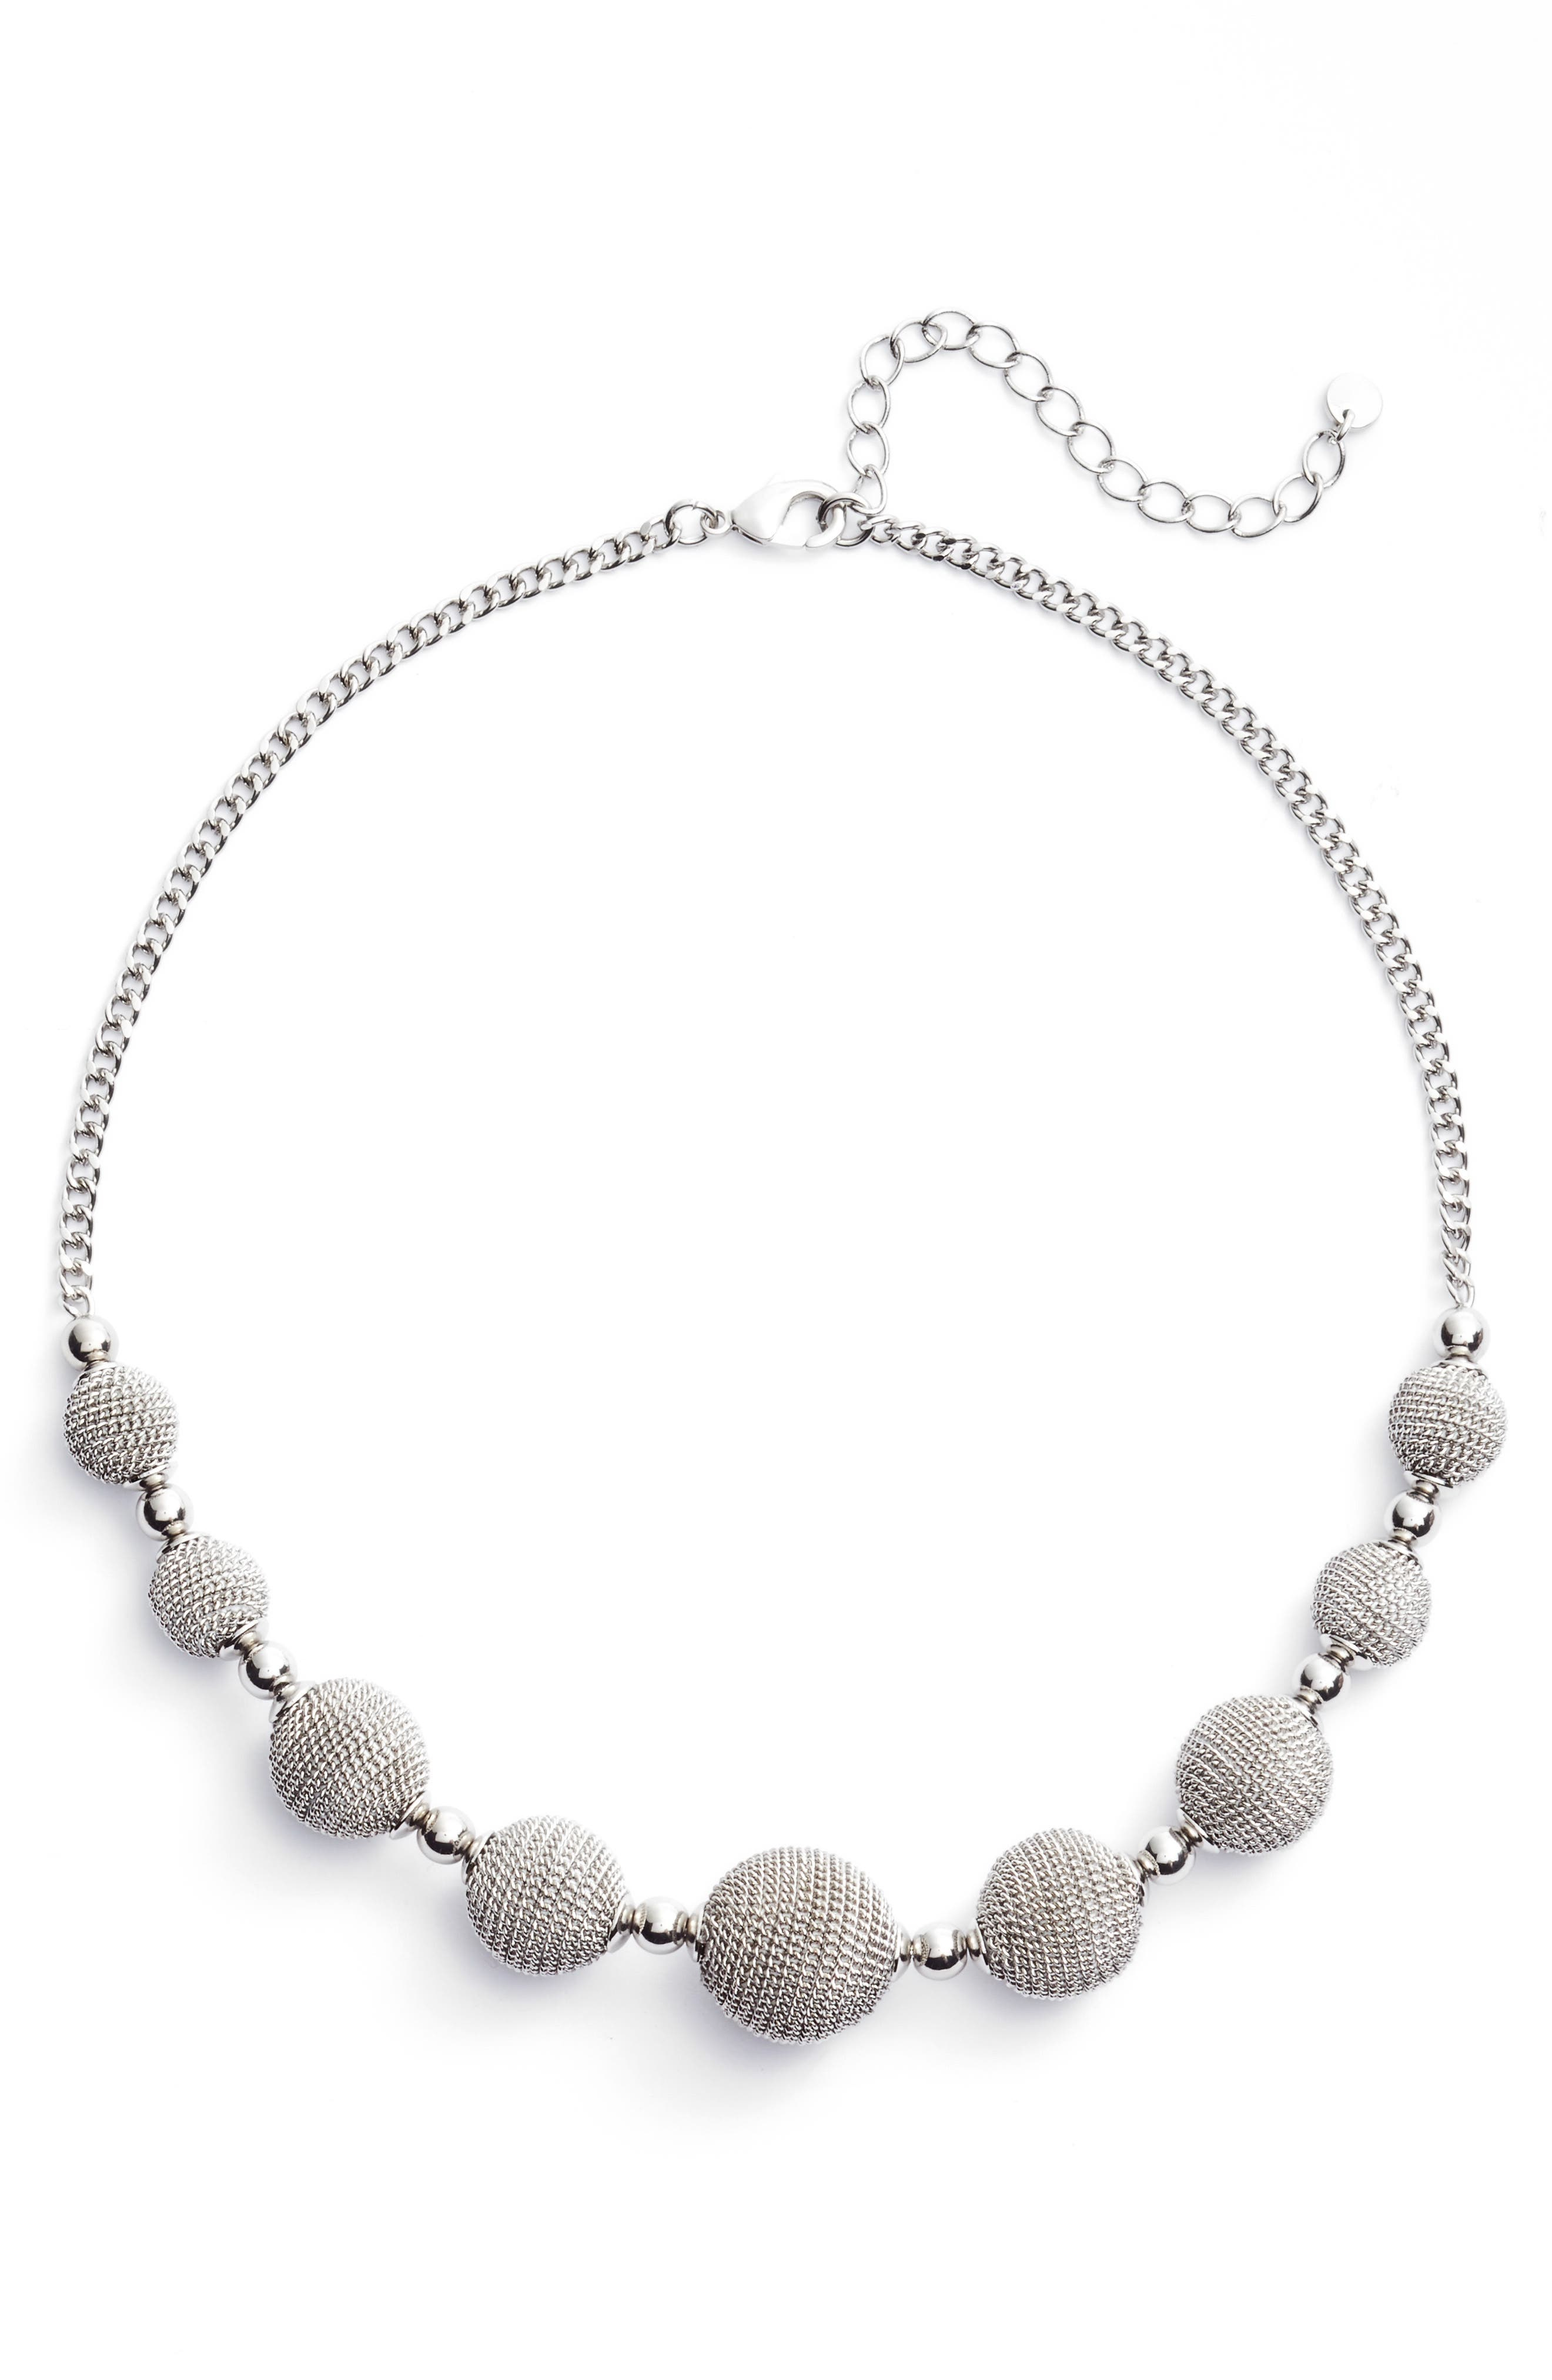 Textured Charm Collar Necklace,                             Main thumbnail 1, color,                             040